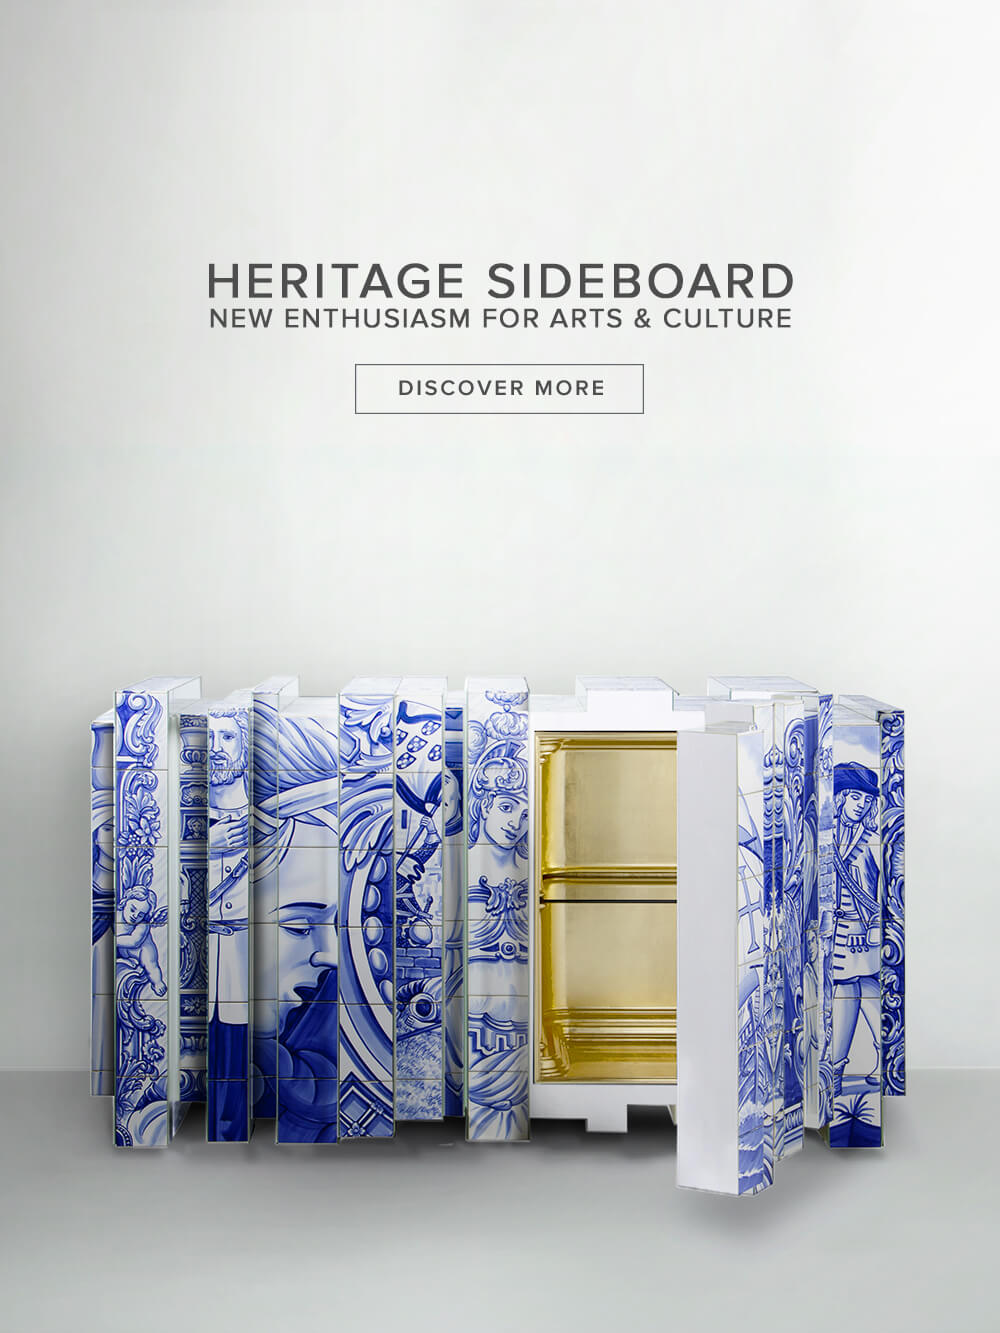 Heritage Sideboard by Boca do Lobo